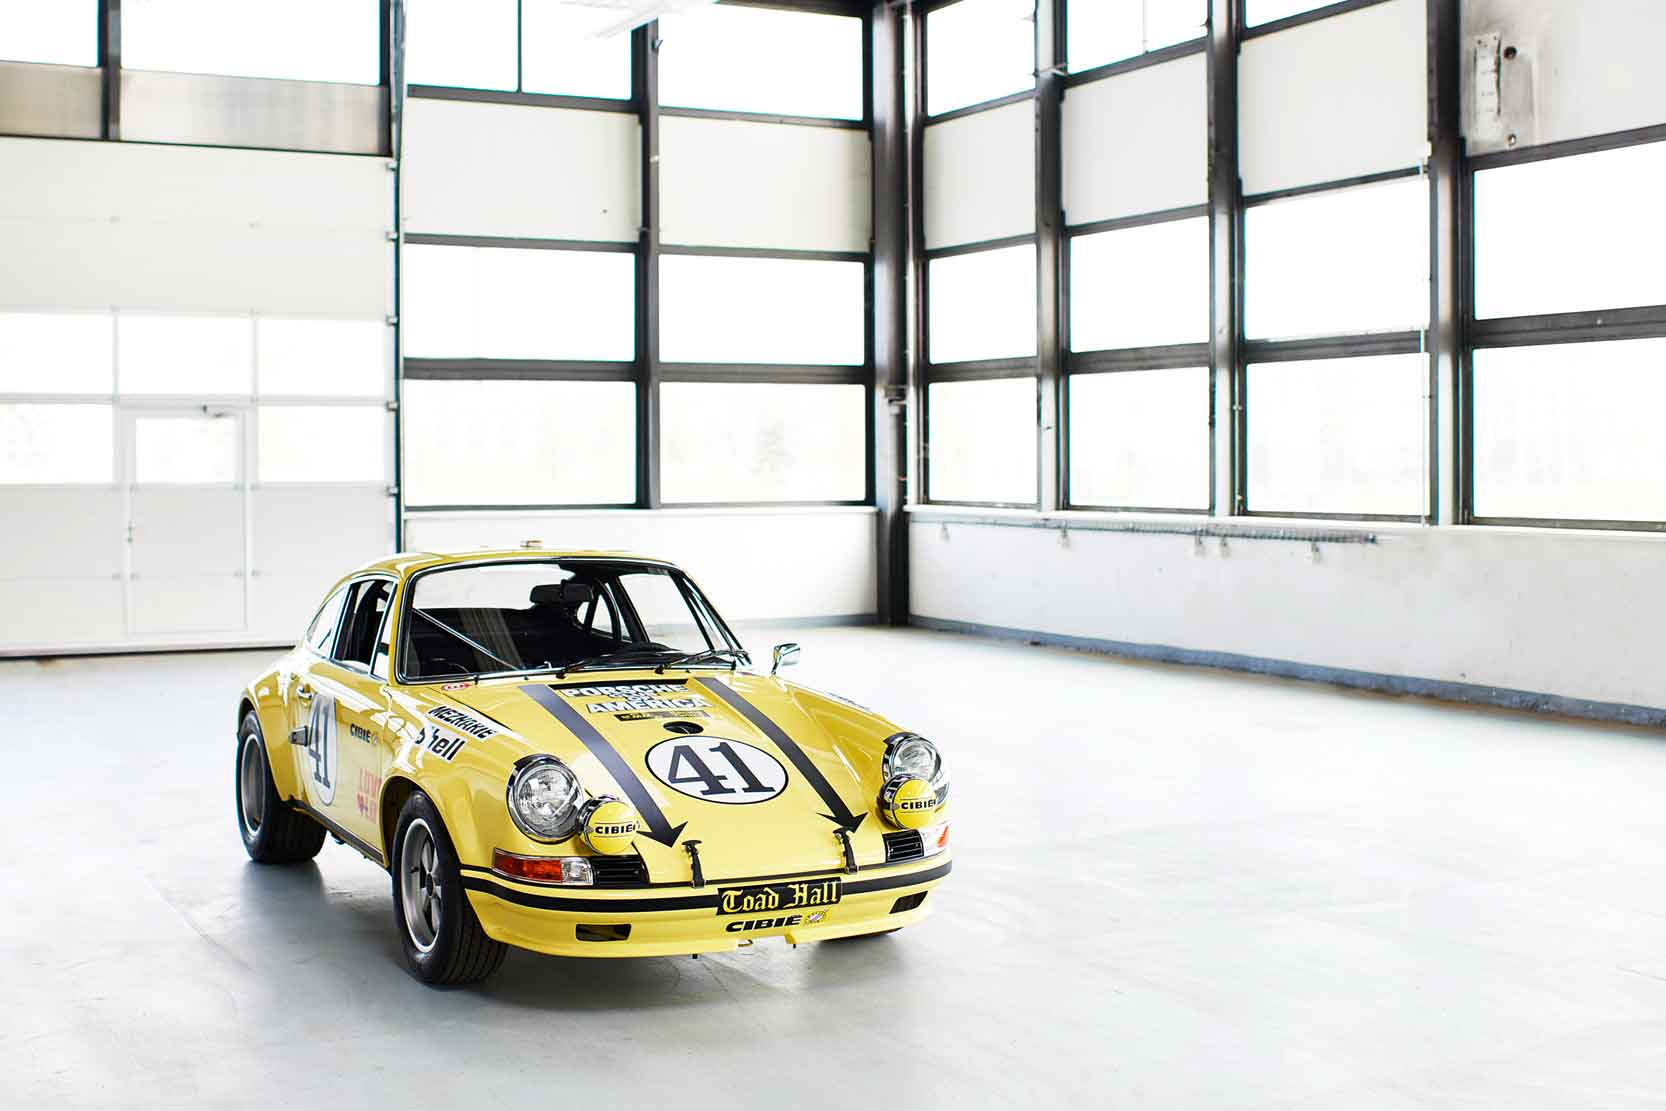 Exterieur_Porsche-911-2-5-ST-Take-Two_4